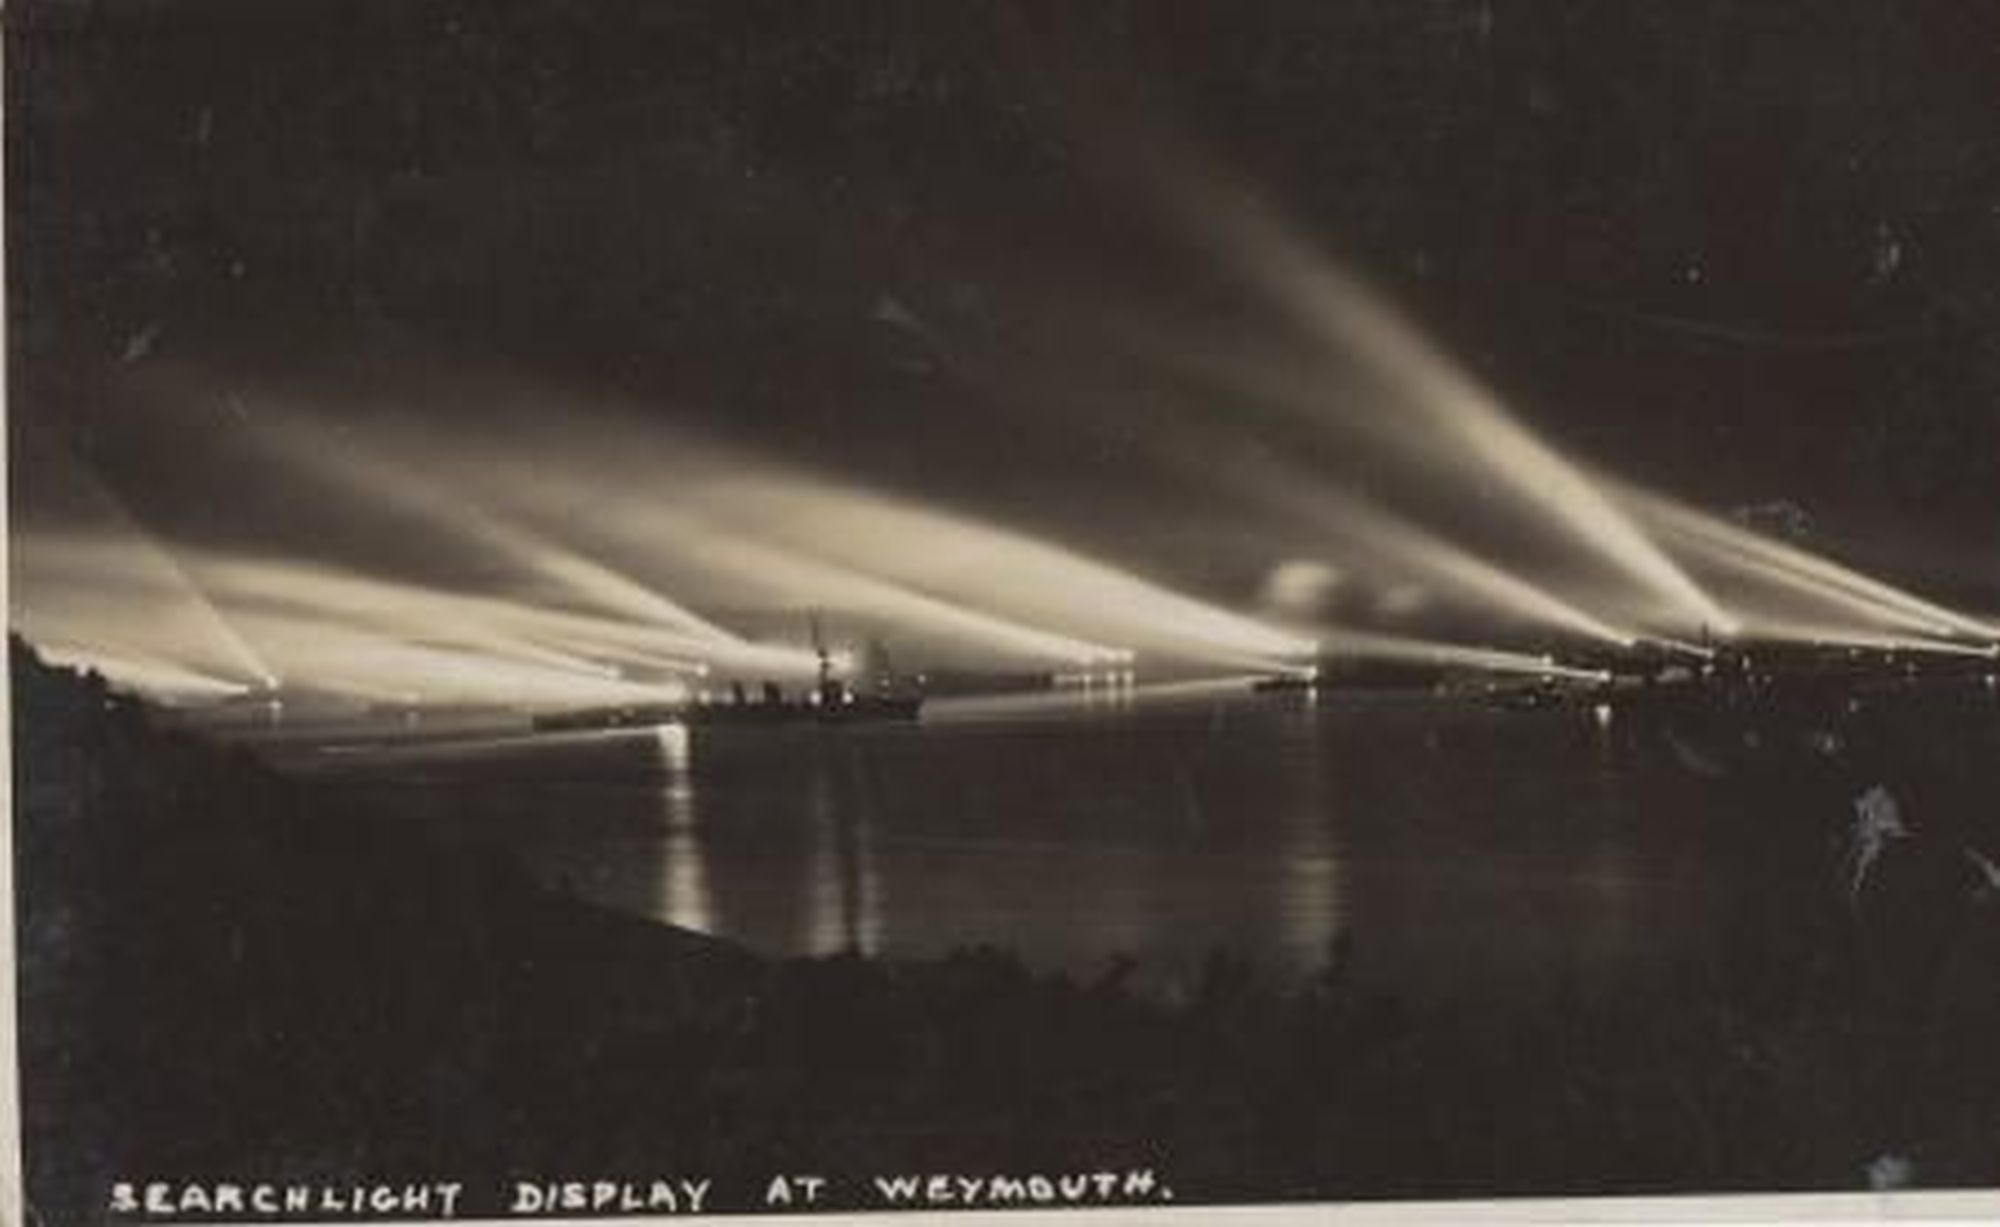 LOOKING BACK: Searchlight display at Weymouth